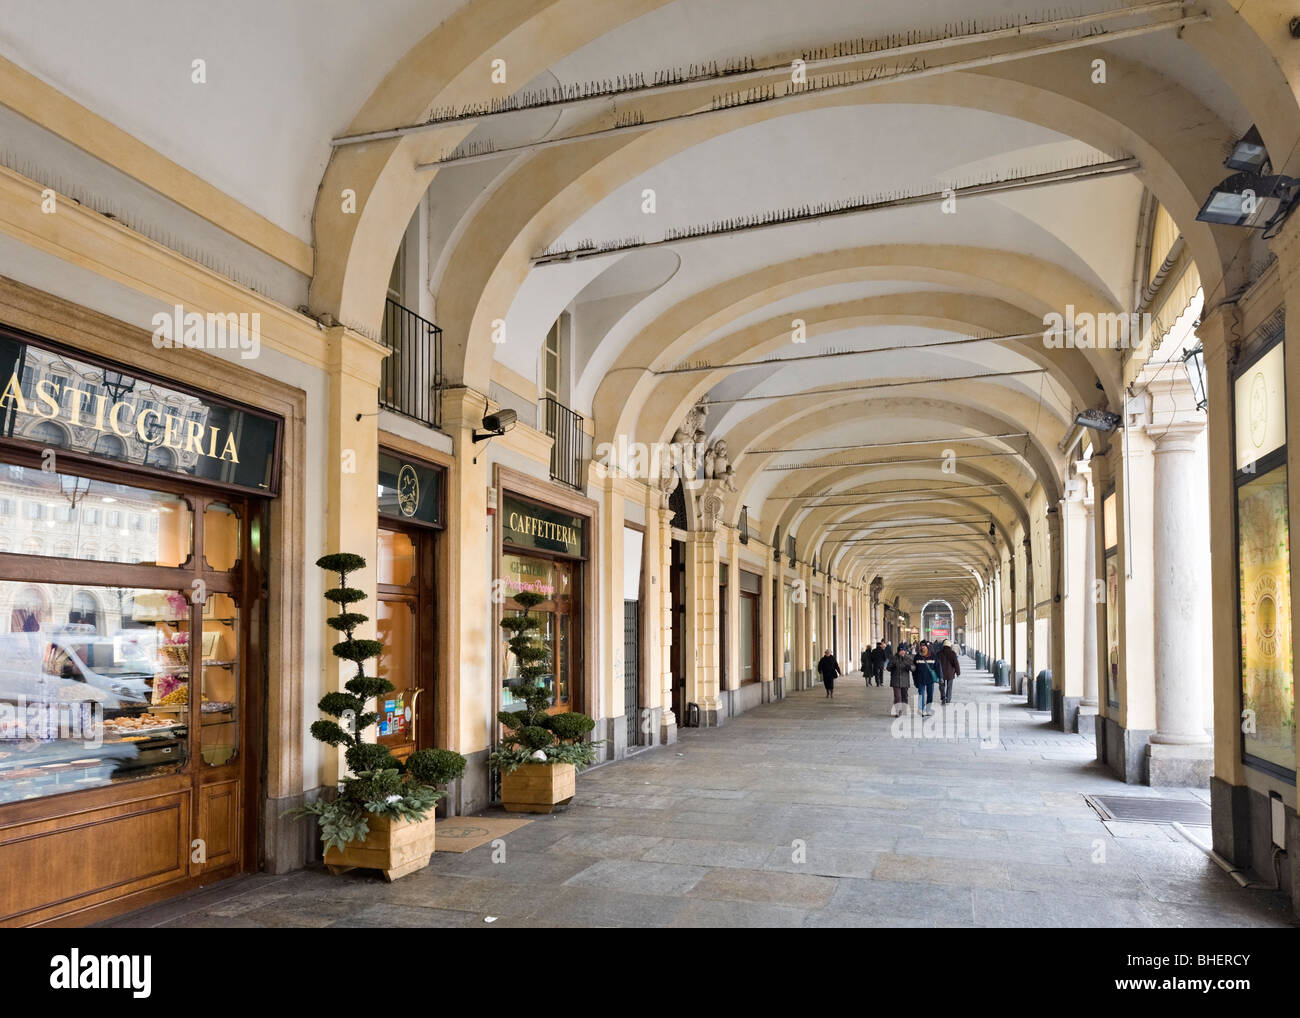 Cafe and shops in a portico on the Piazza San Carlo in the historic centre, Turin, Piemonte, Italy - Stock Image